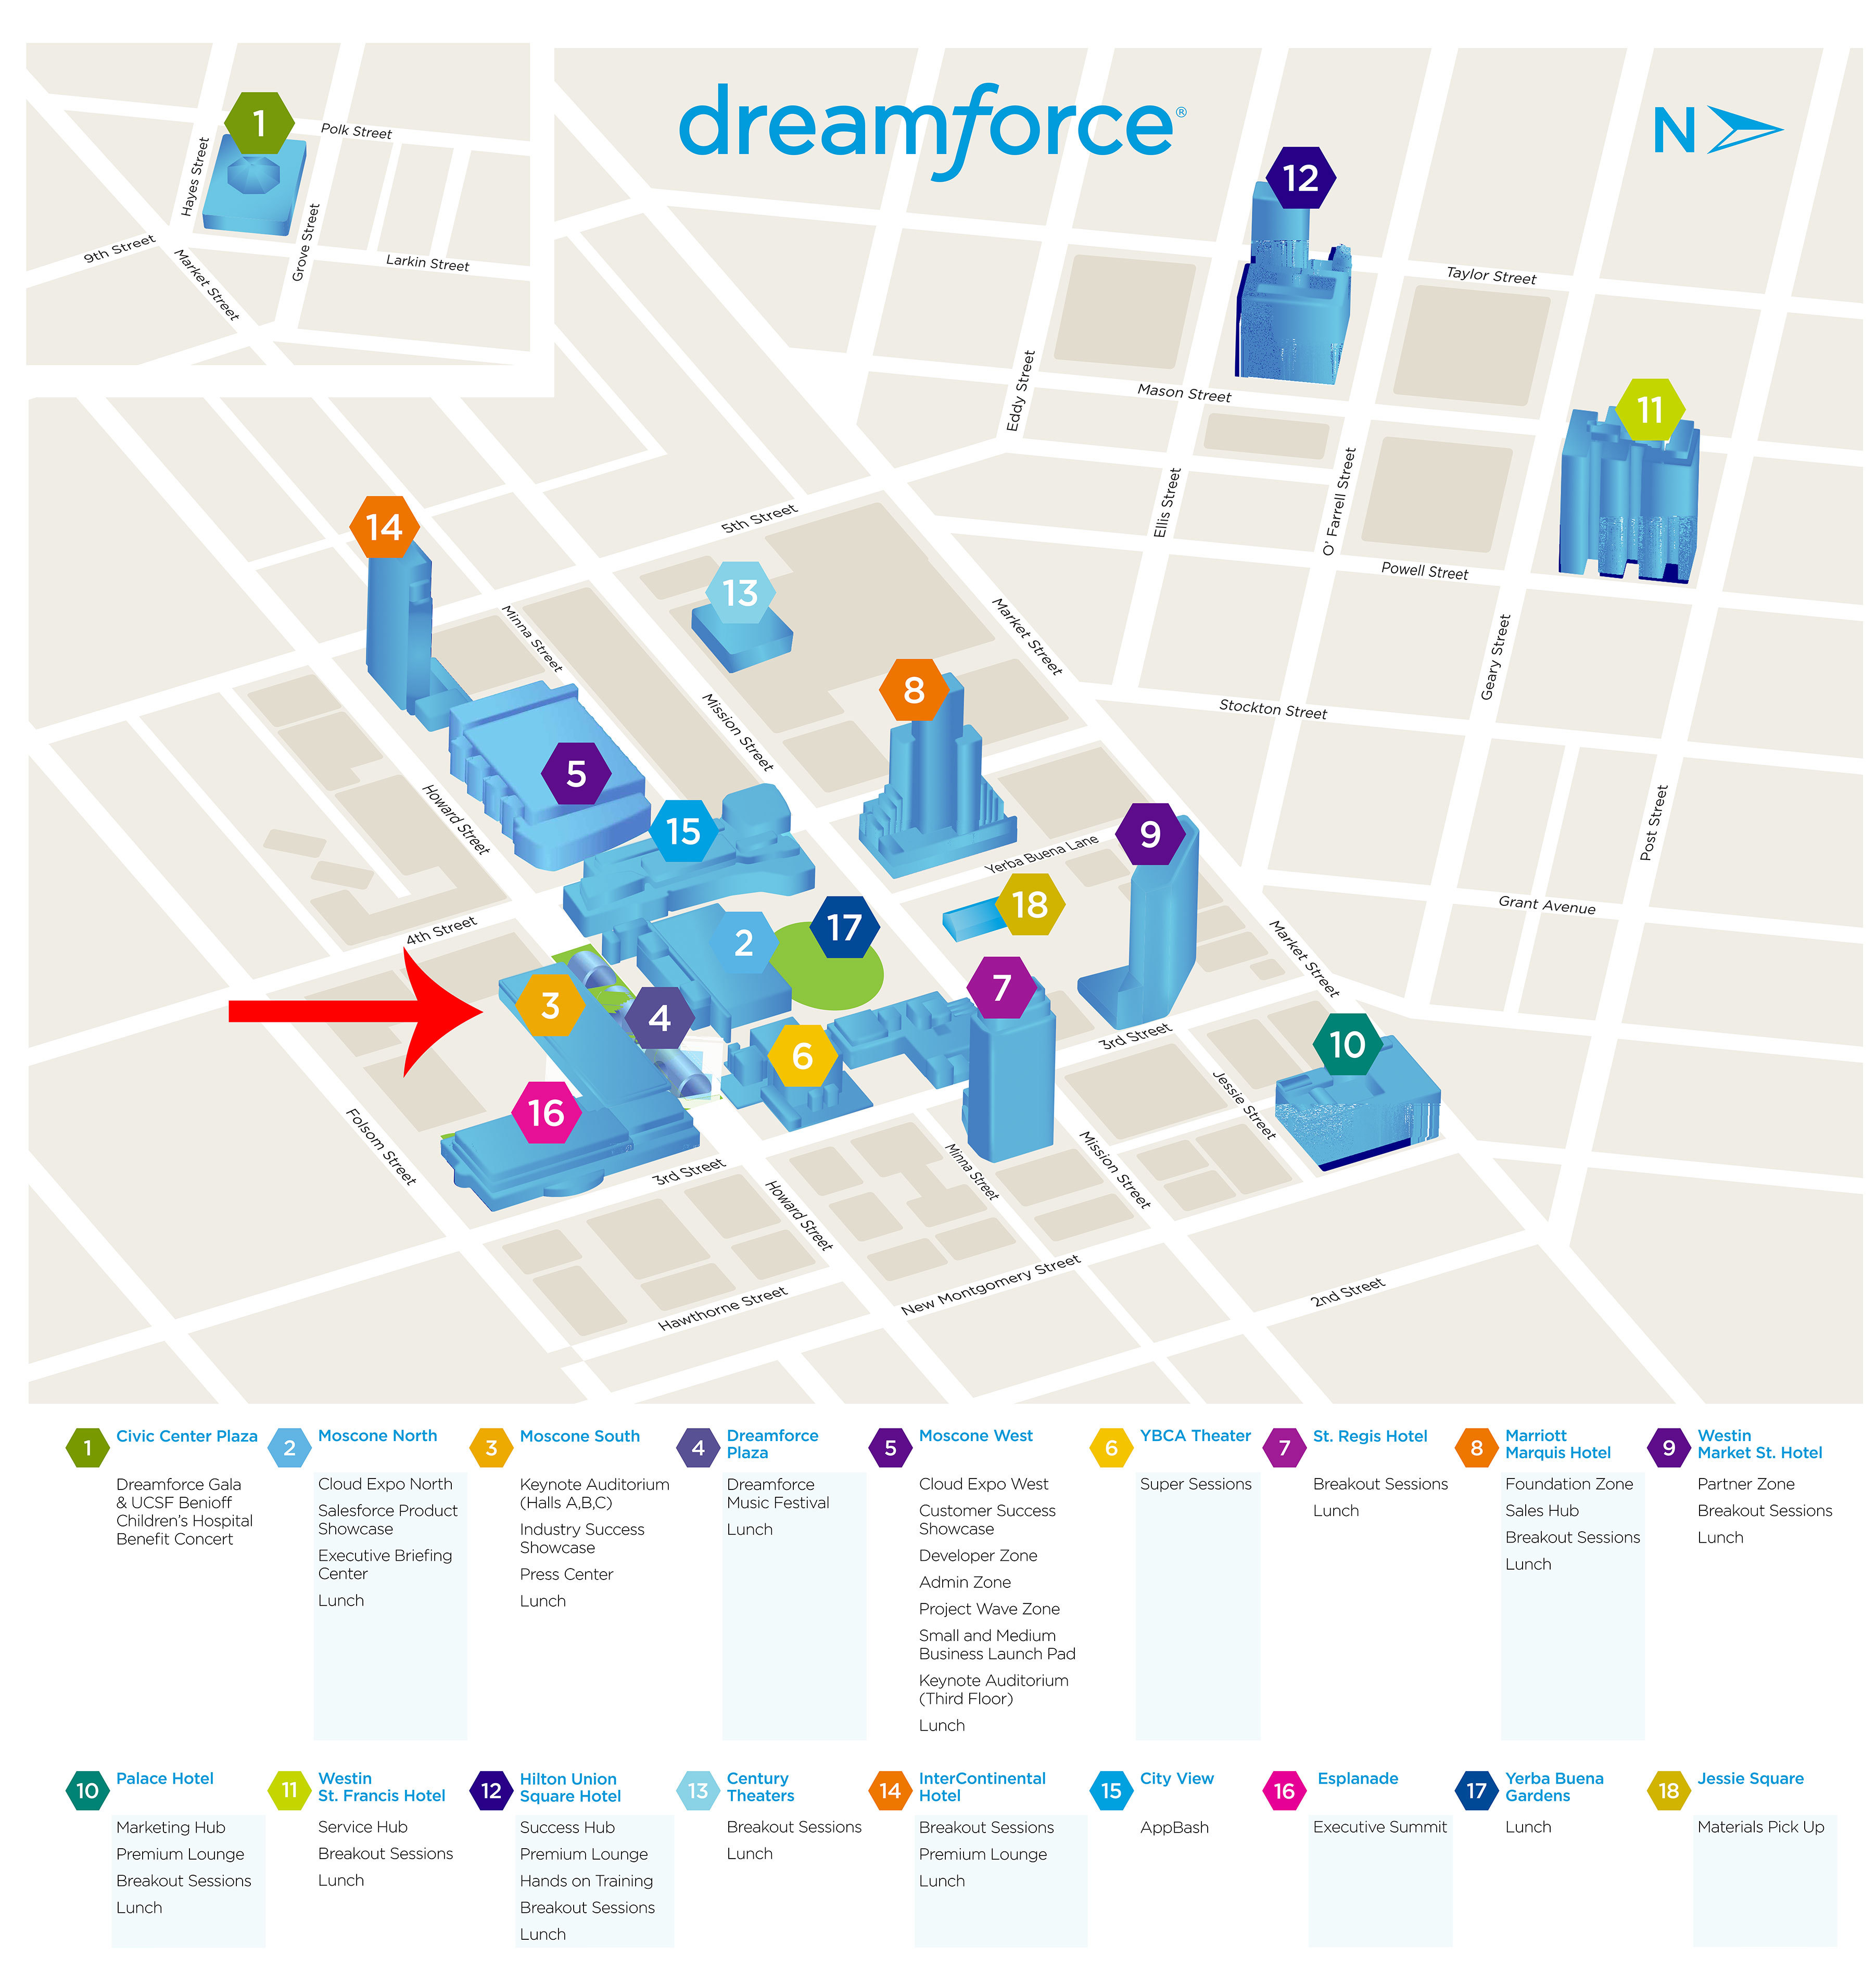 Campus Map: Dreamforce Campus Map on